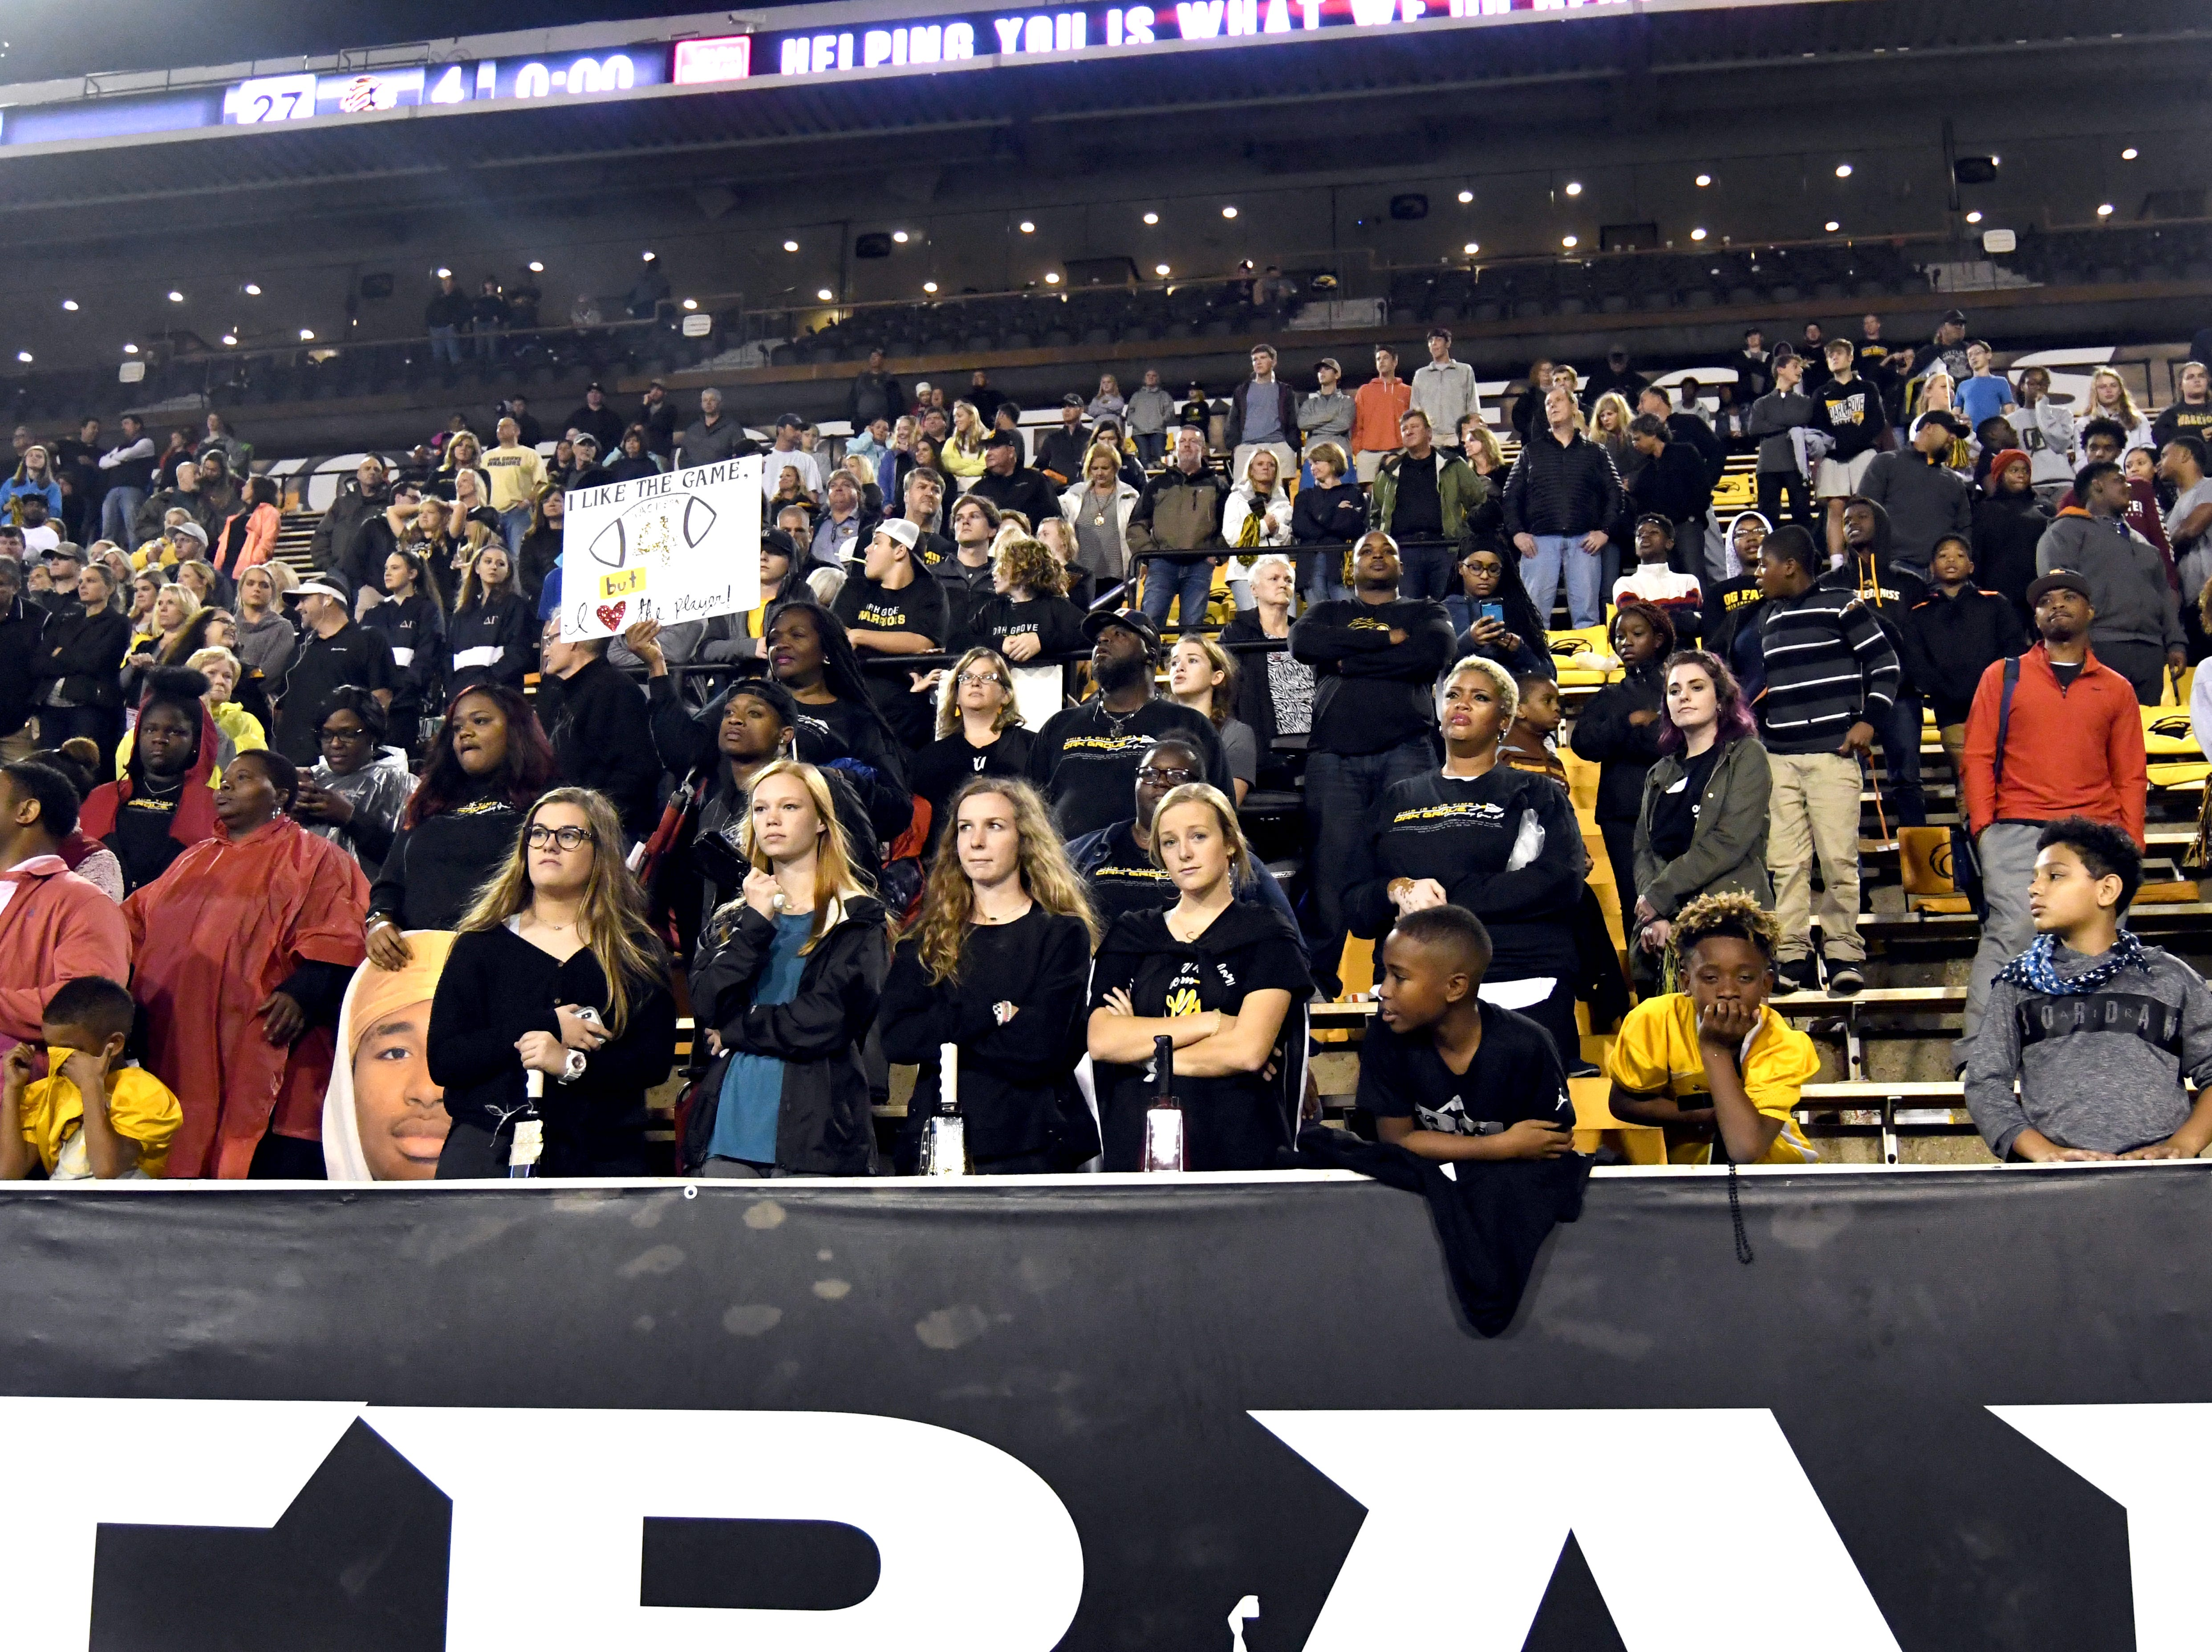 Oak Grove fans show their support as their team loses to Horn Lake in the 6A state championship game at M.M. Roberts Stadium in Hattiesburg on Friday, November 30, 2018.